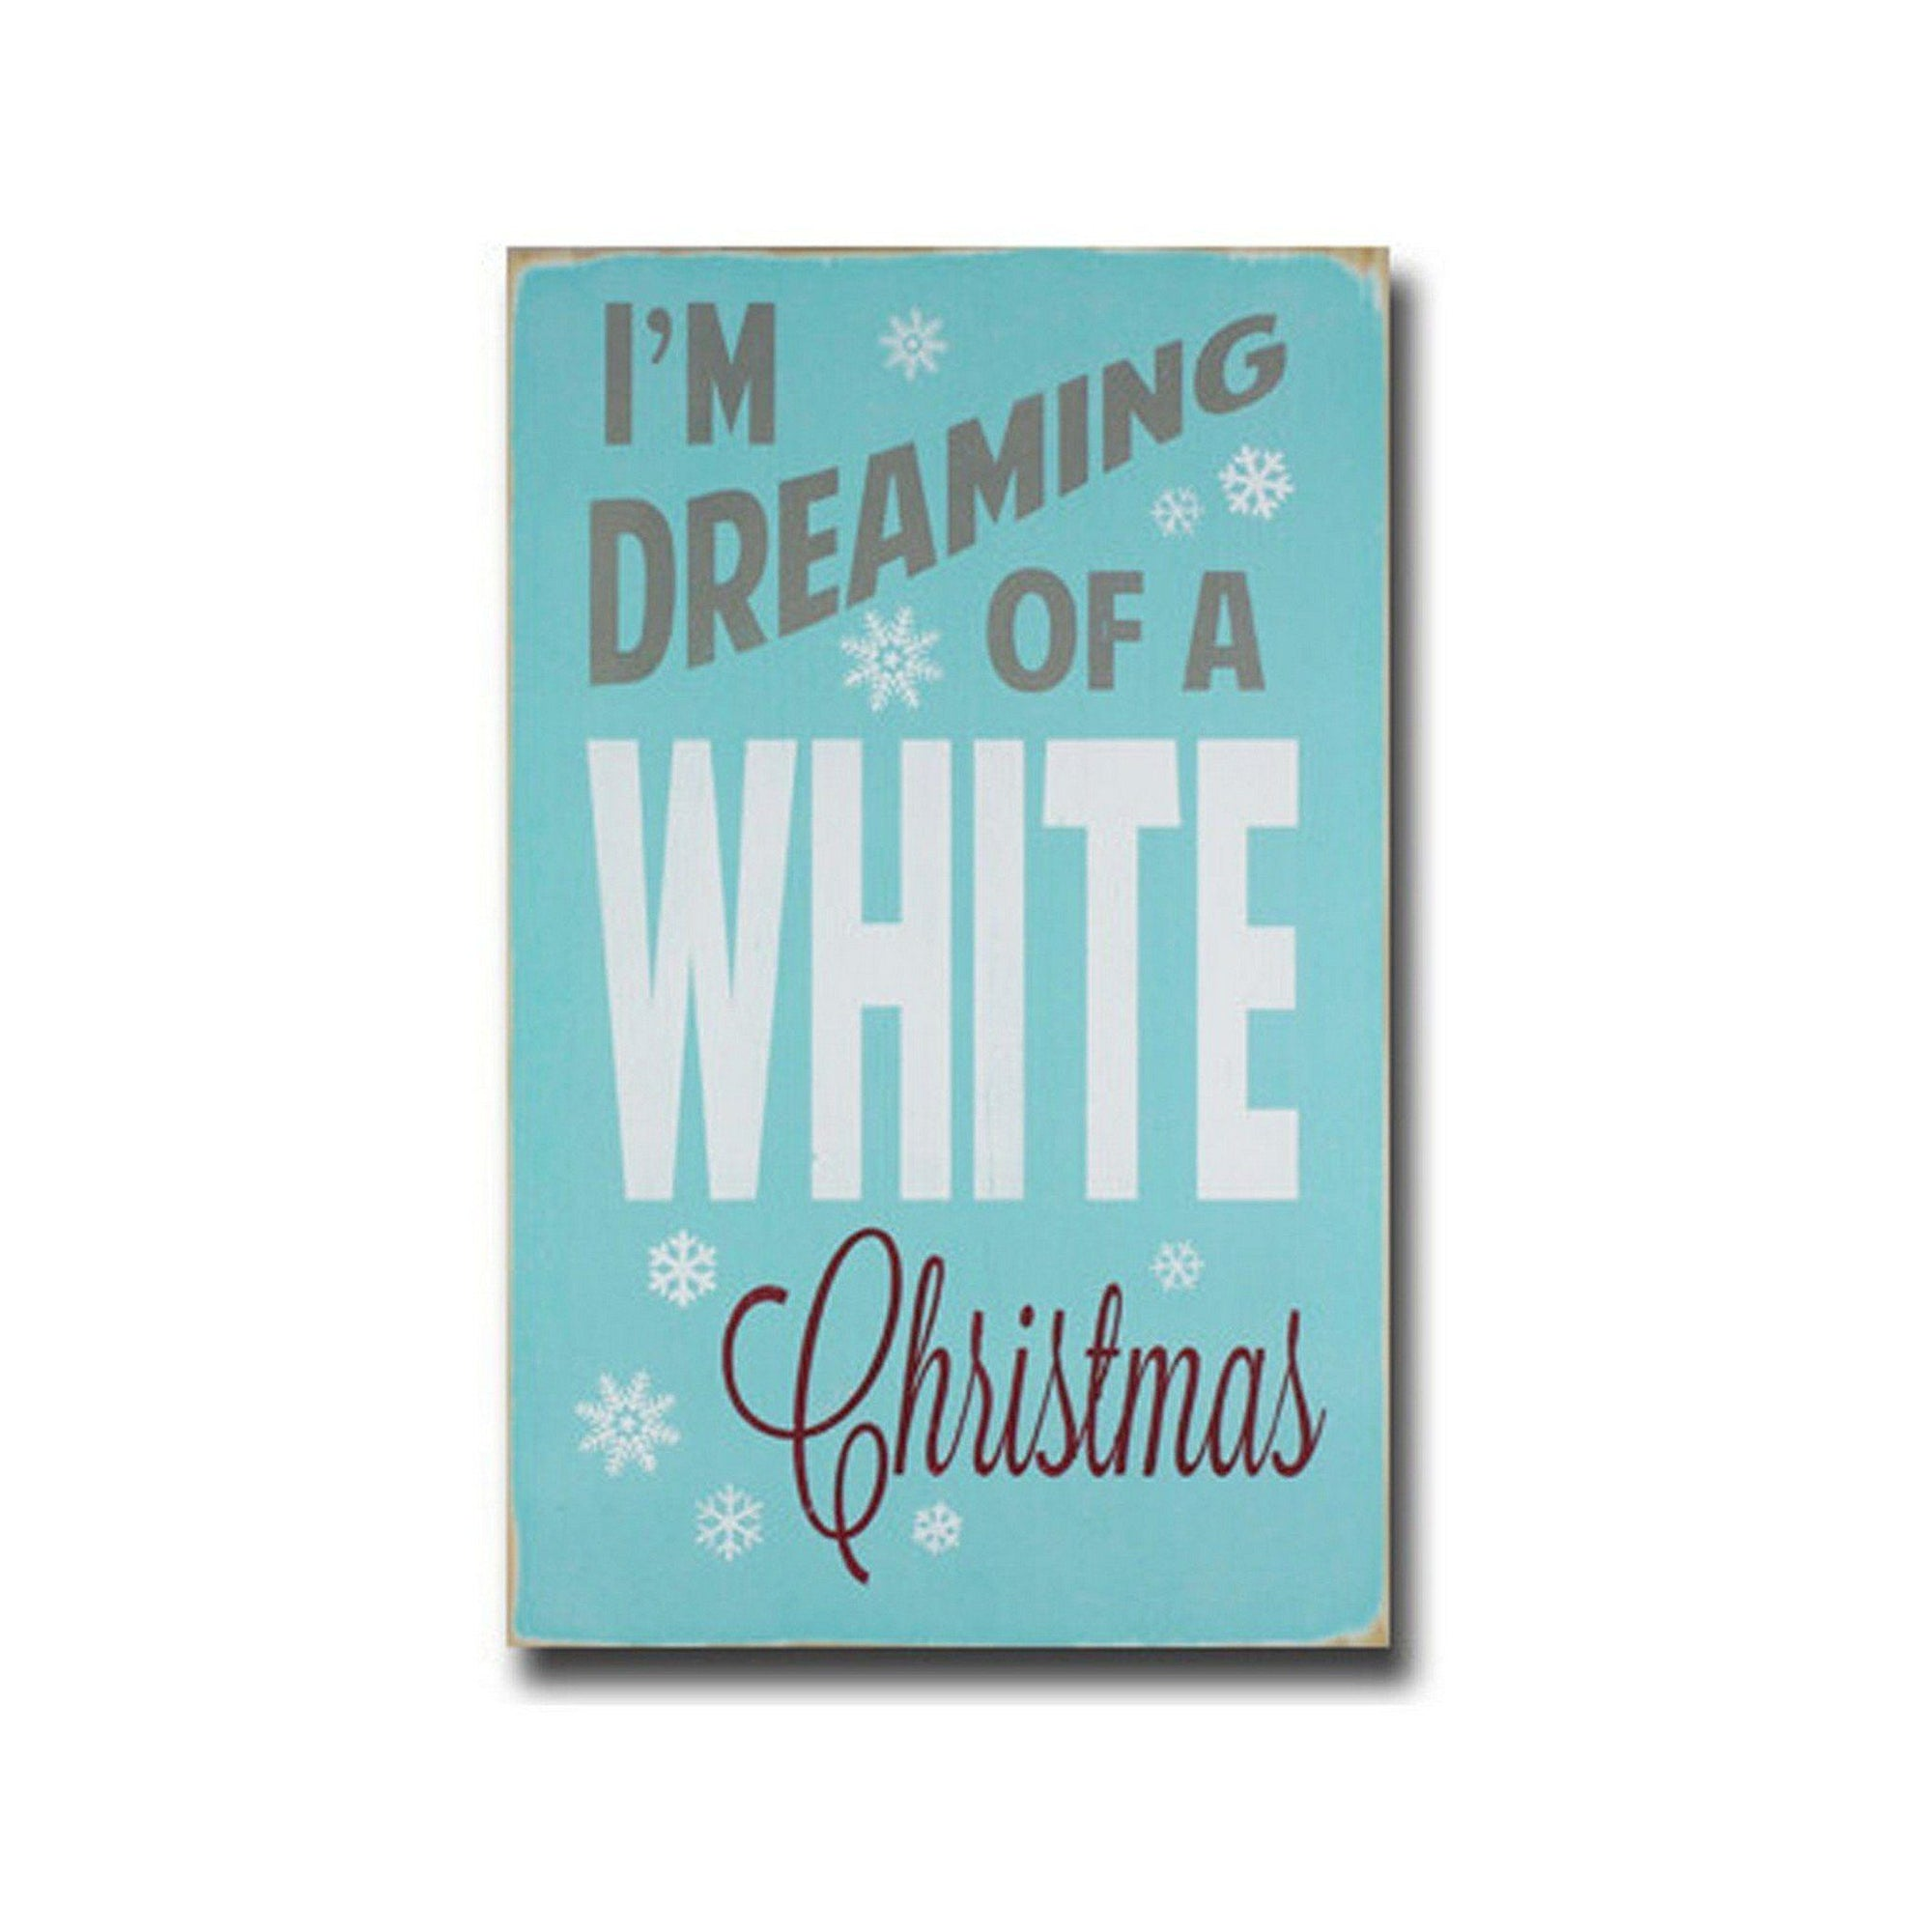 Dreaming Of A White Christmas.Dreaming Of A White Christmas